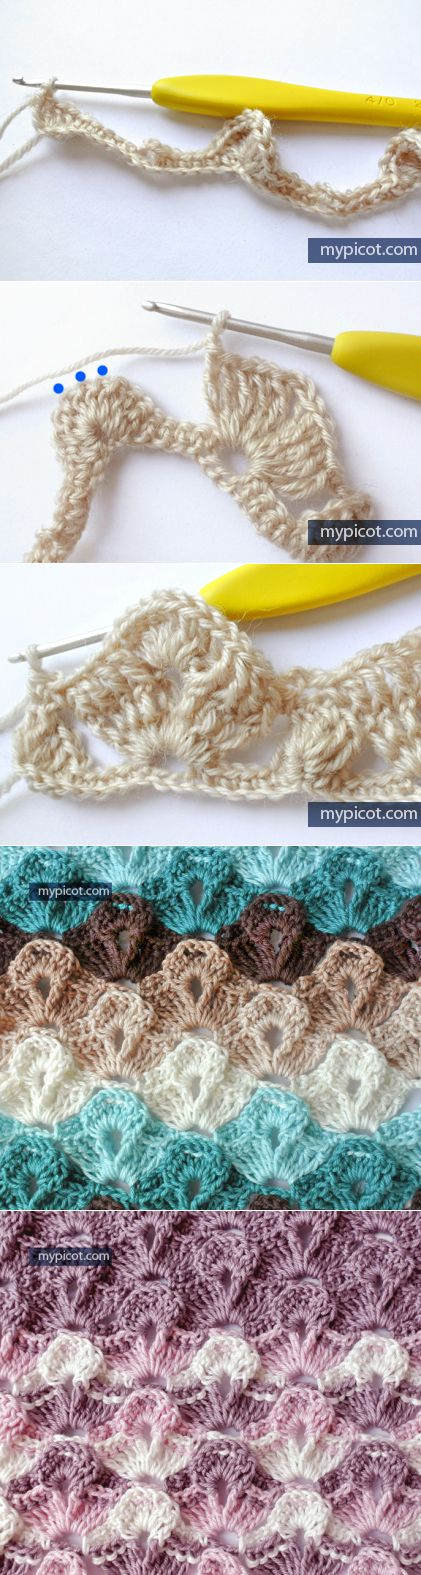 MyPicot | Free crochet patterns                                                                                                                                                      More